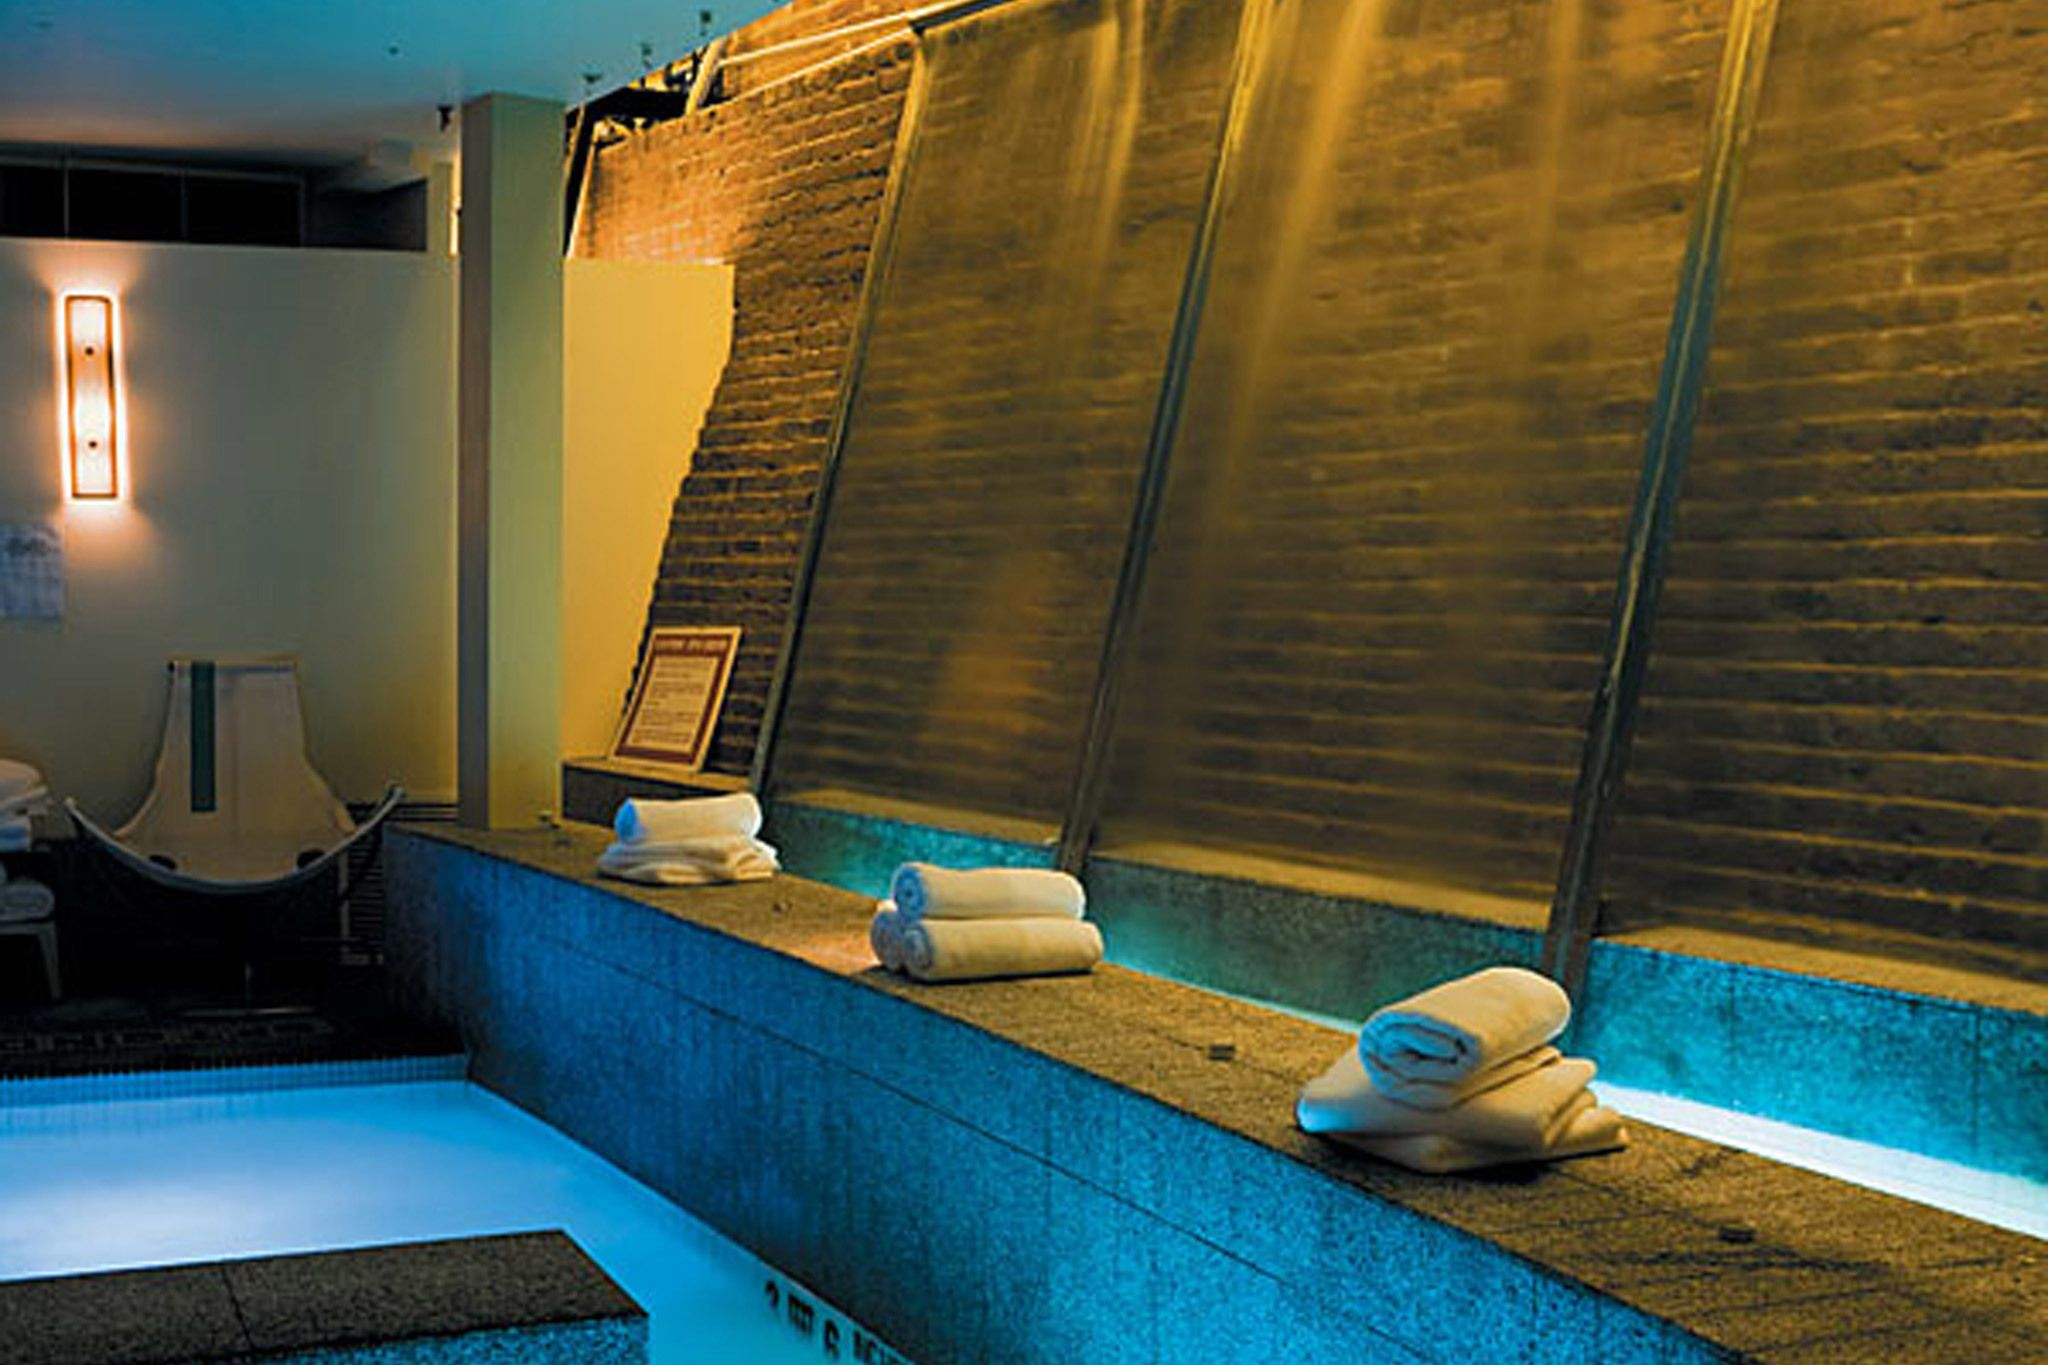 The 10 Best NYC Spas to Treat Yourself